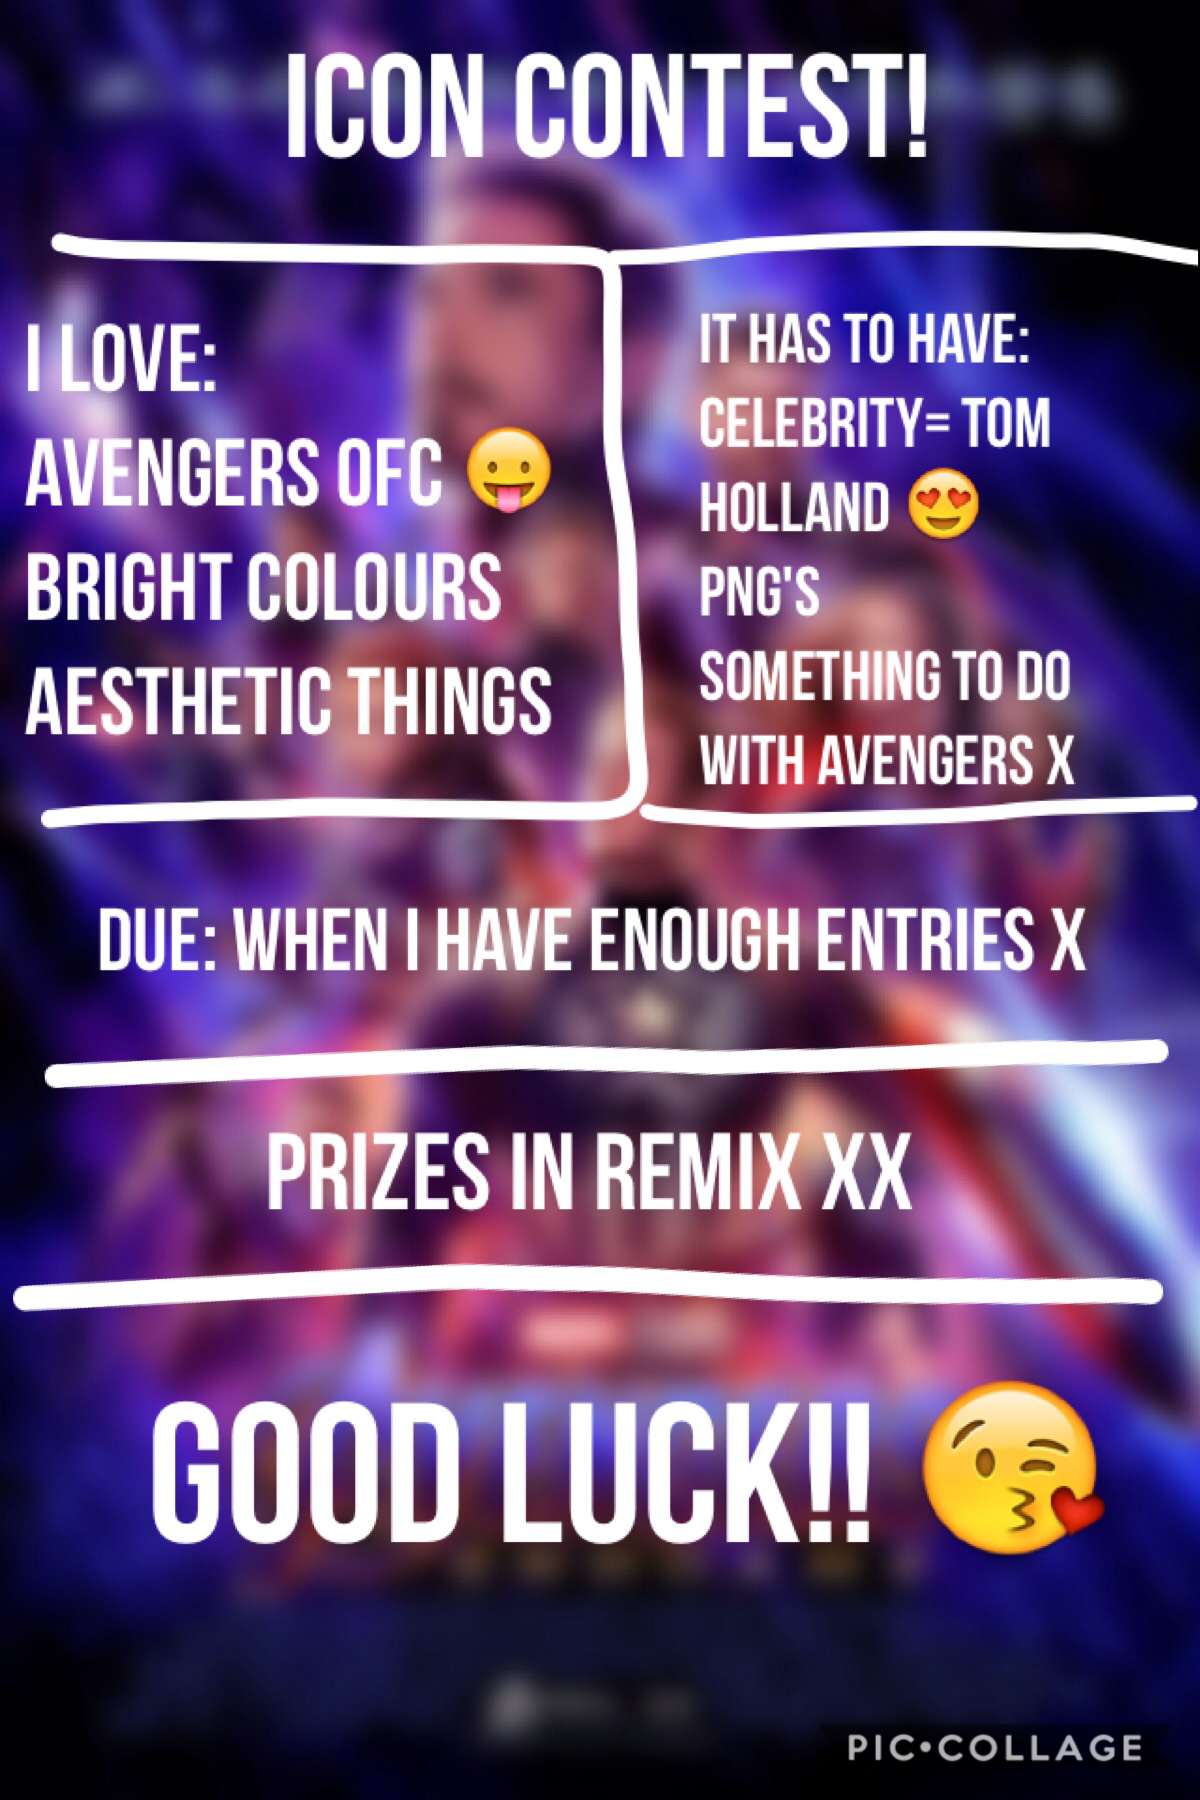 I hope I can get lots of entries x 😘